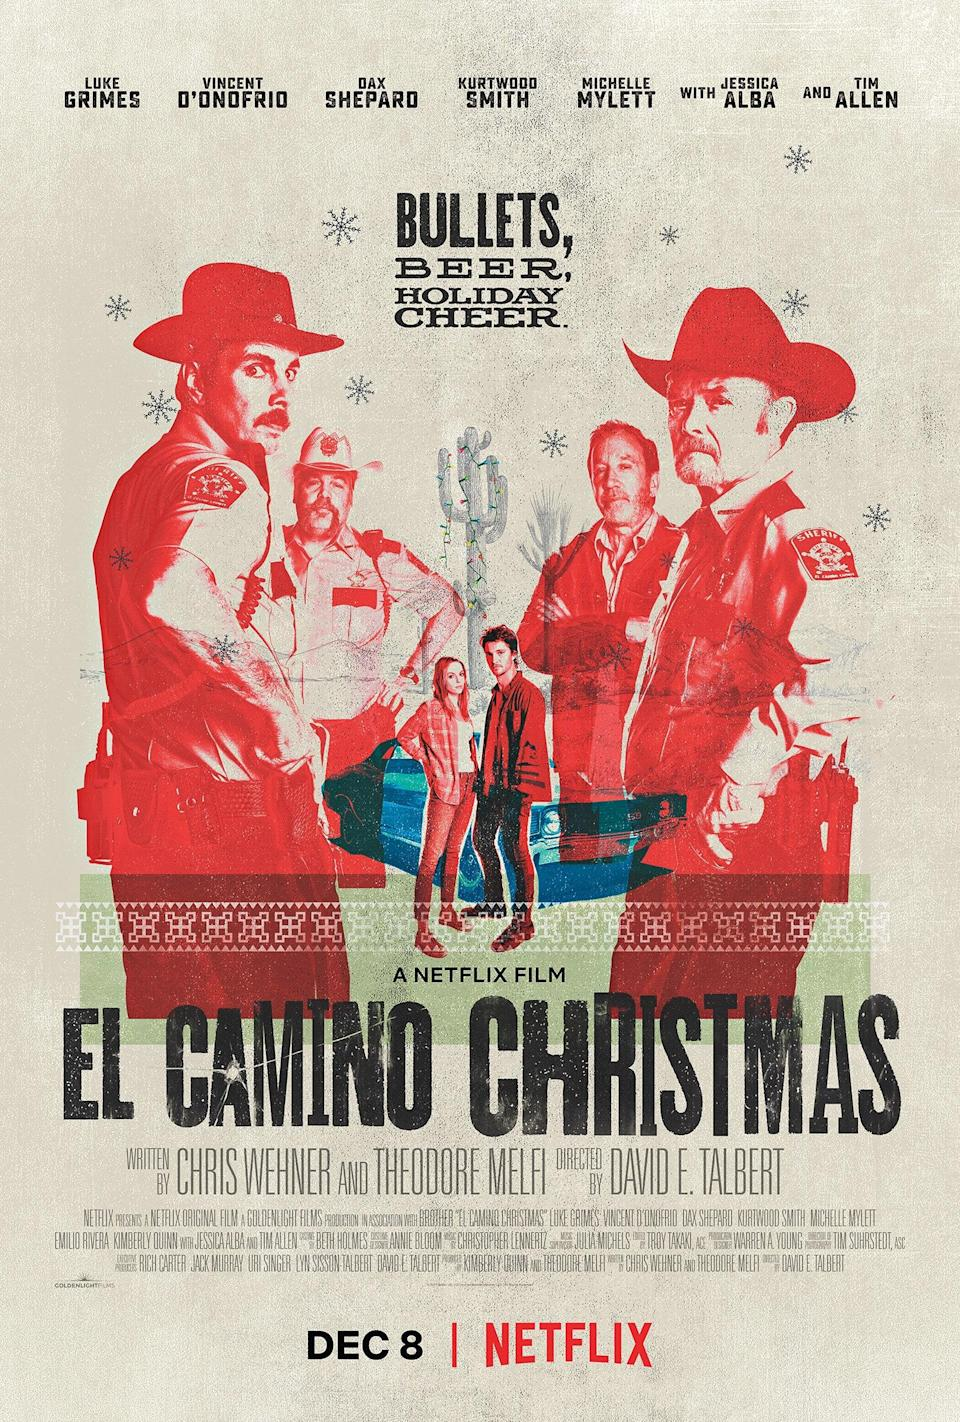 Not every Christmas movie on Netflix takes place in a quaint little town dripping with snow and holiday cheer. <em>El Camino Christmas</em> is a grittier story of a man who goes in search of the father he never knew, only to end up in the middle of a liquor store holdup with his long-lost dad.